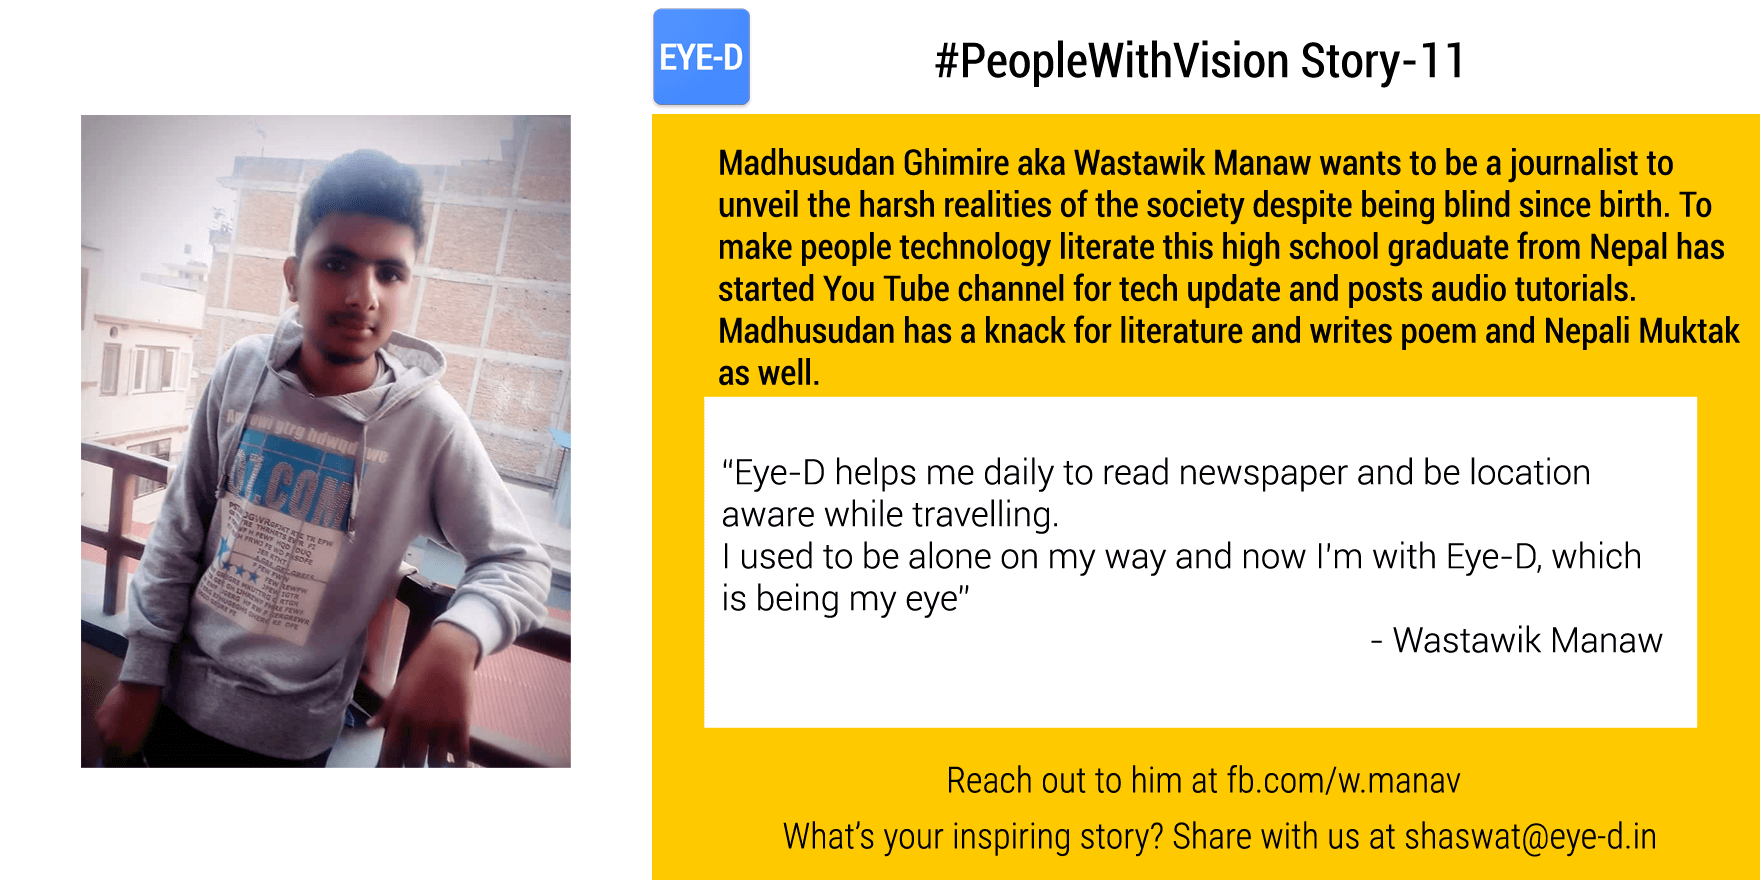 Manaw the YouTuber from Nepal is on a mission to make people technology literate> His #People with vision story talks about his life and how Eye-D is helping him in leading an Independent life.